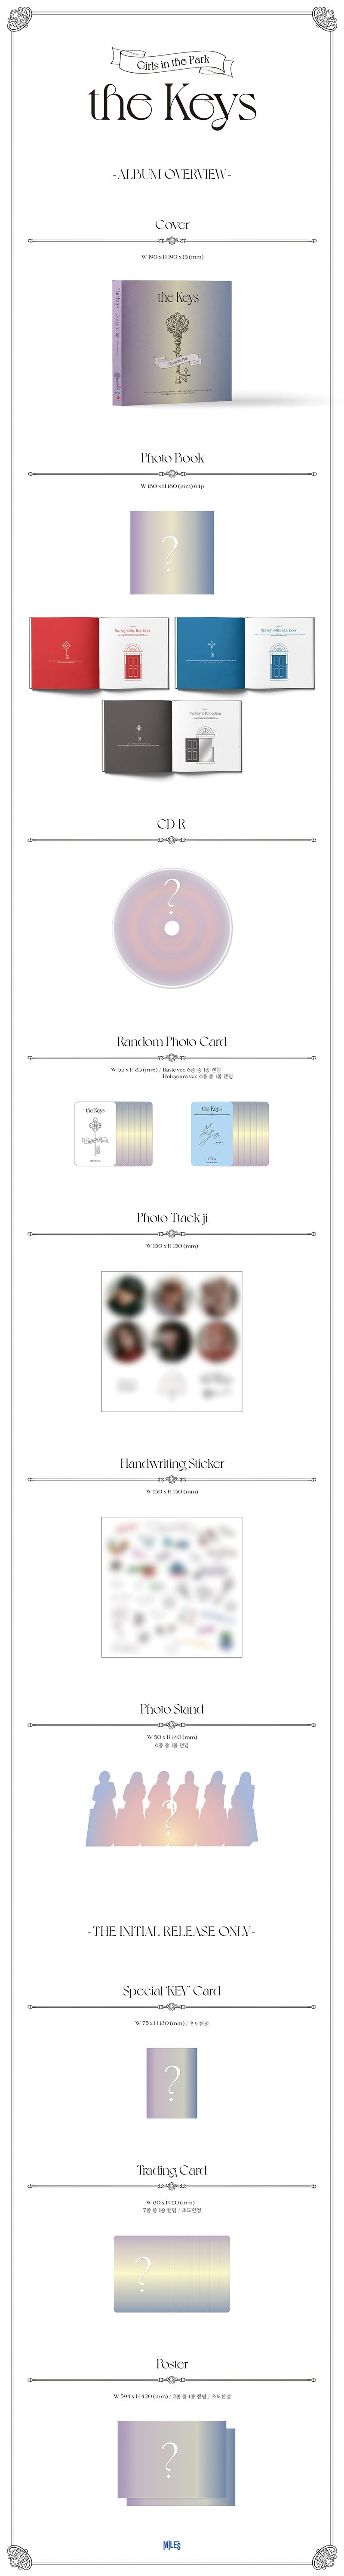 GWSN 4th mini album [the Keys]